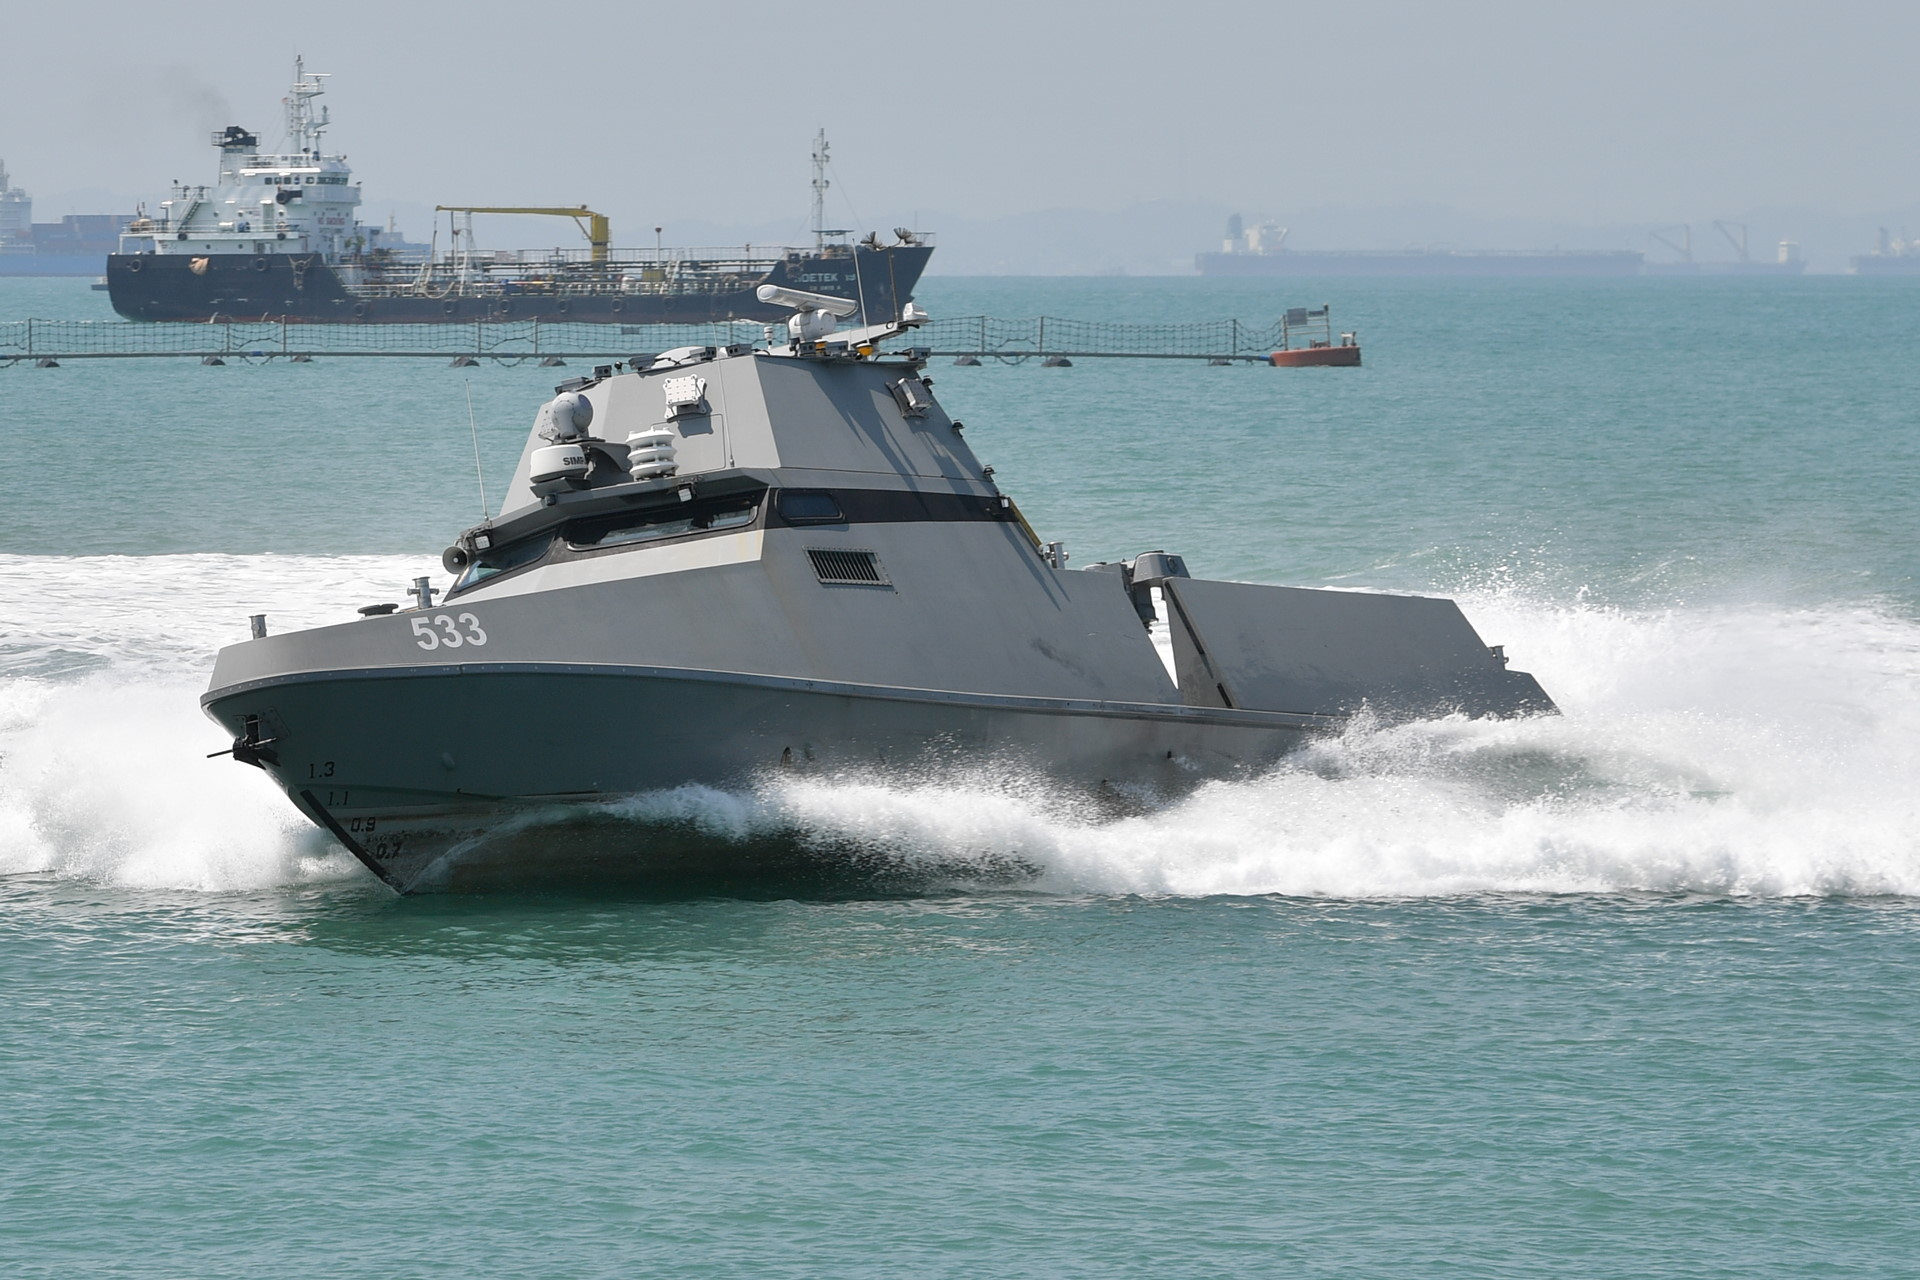 The Maritime Security USV can provide a persistent presence to patrol Singapore's waters.